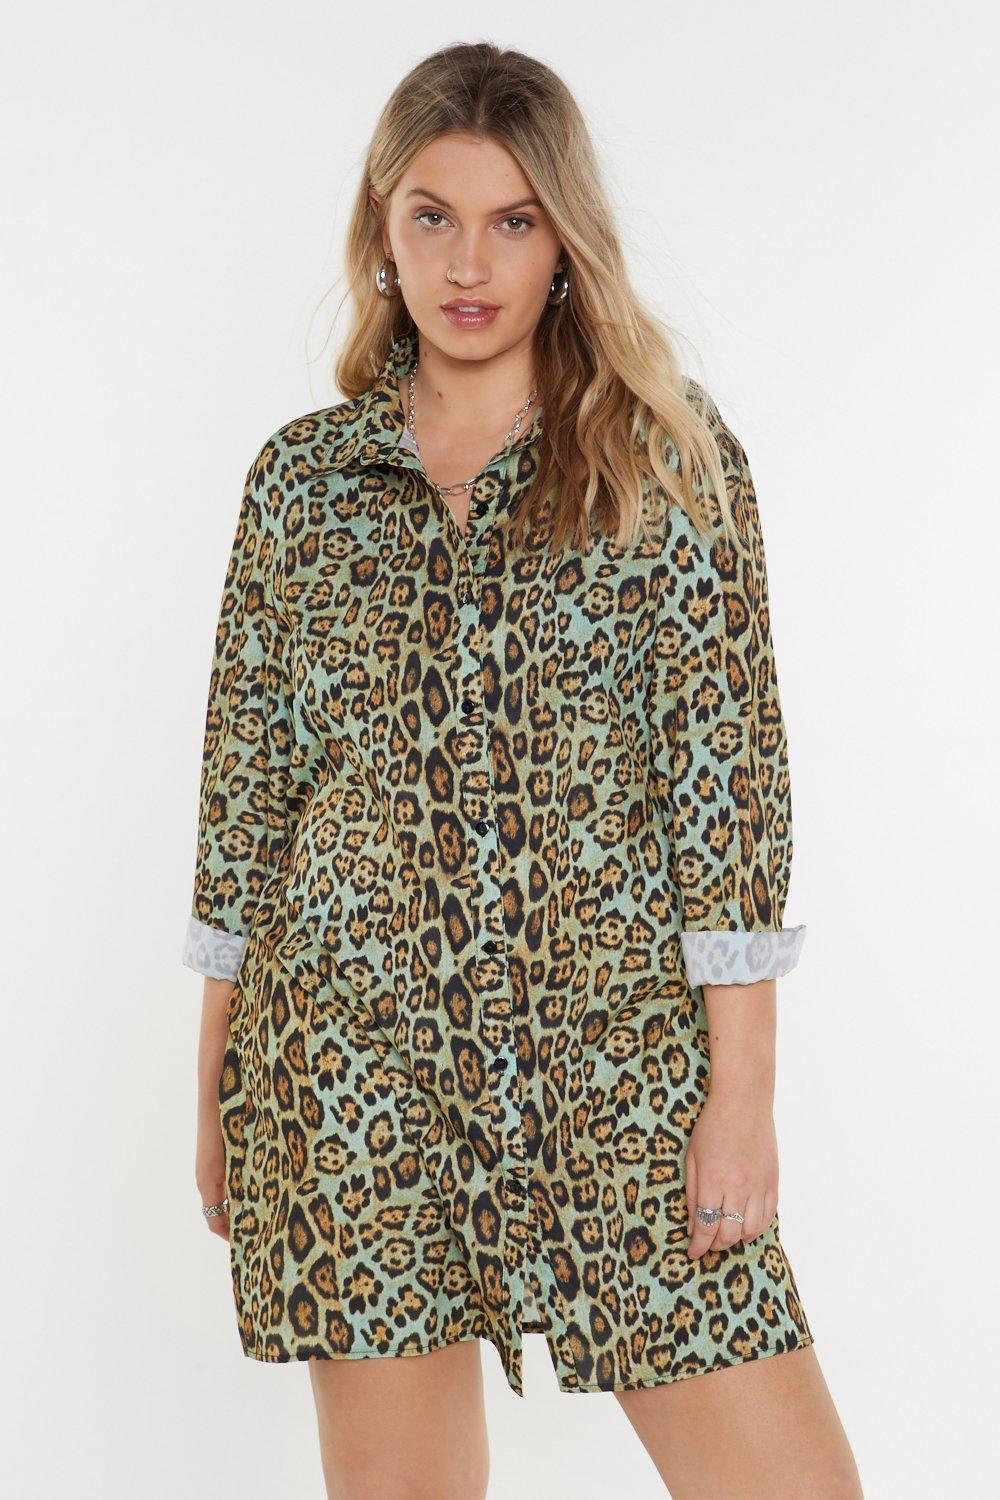 a2425e119592b Tail All Leopard Shirt Dress | Shop Clothes at Nasty Gal!